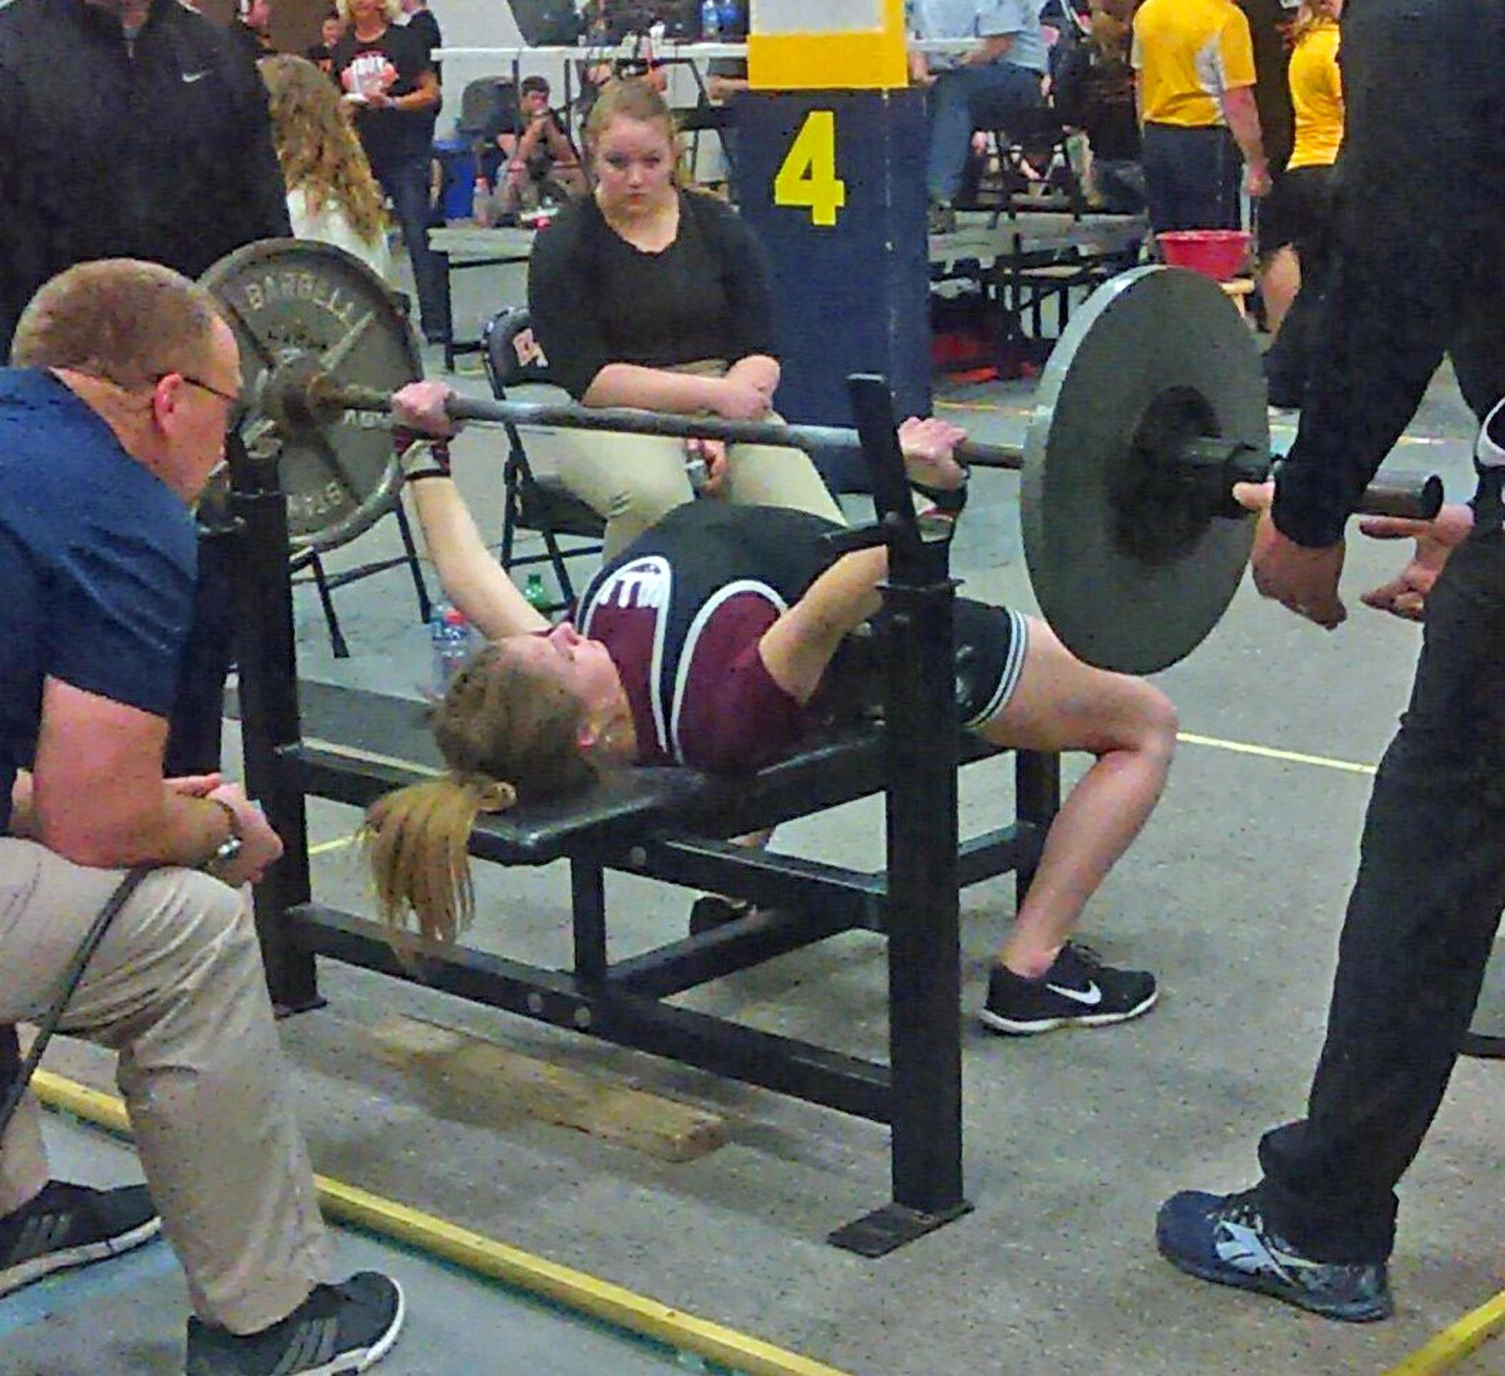 Record Bench Part - 46: Annika Angelo Finishes Her Record-breaking Bench Lift Of 145 Pounds.